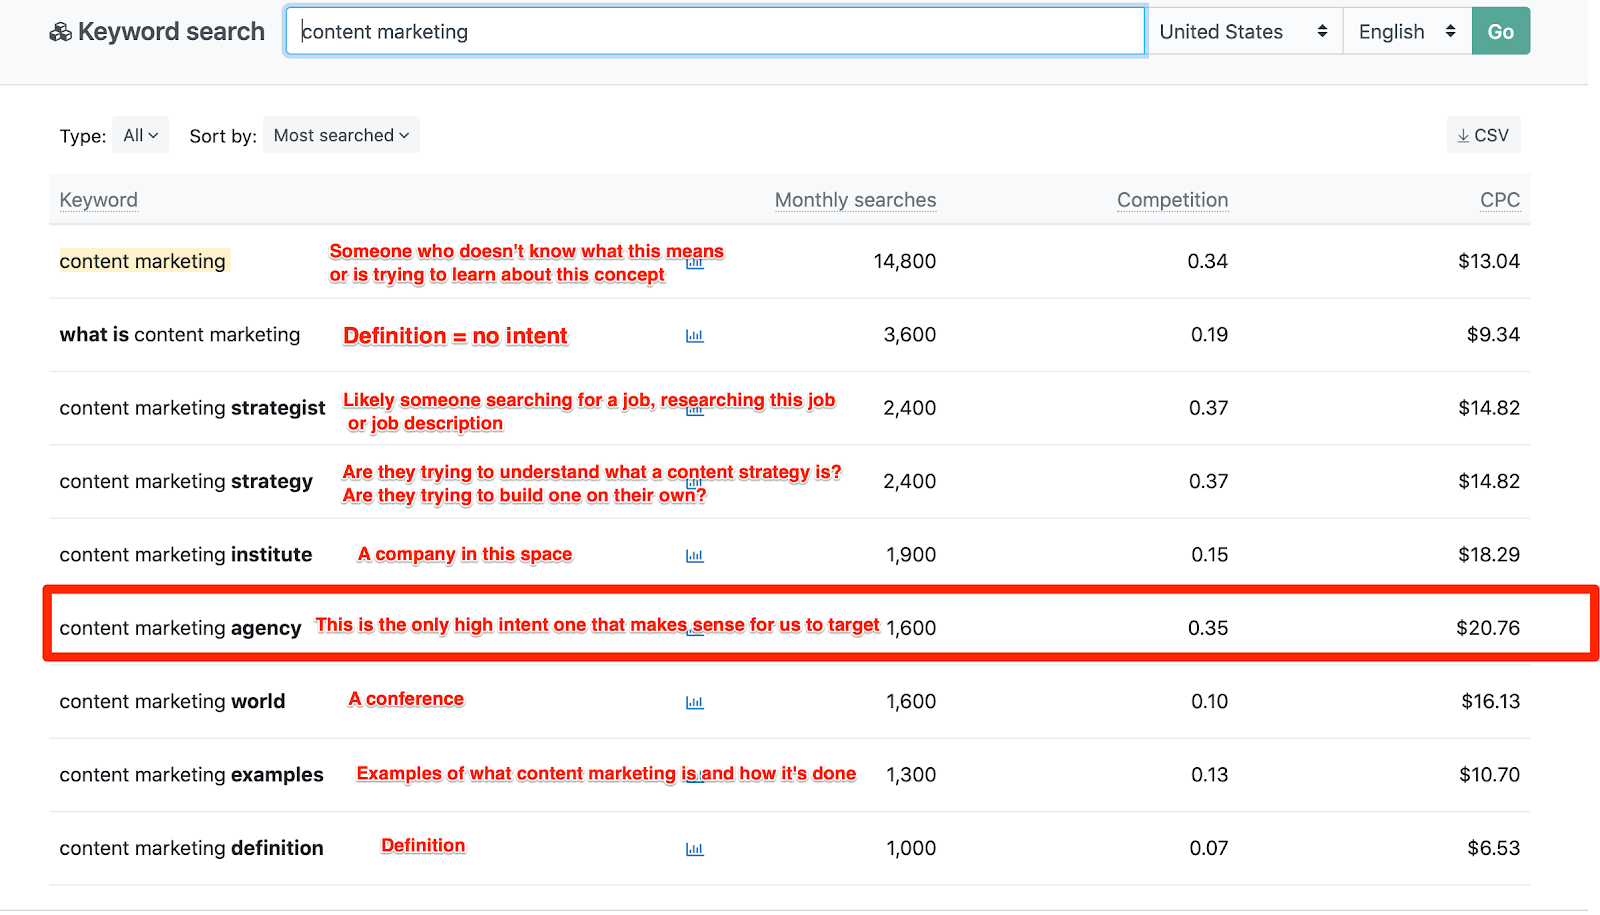 content marketing Keyword search